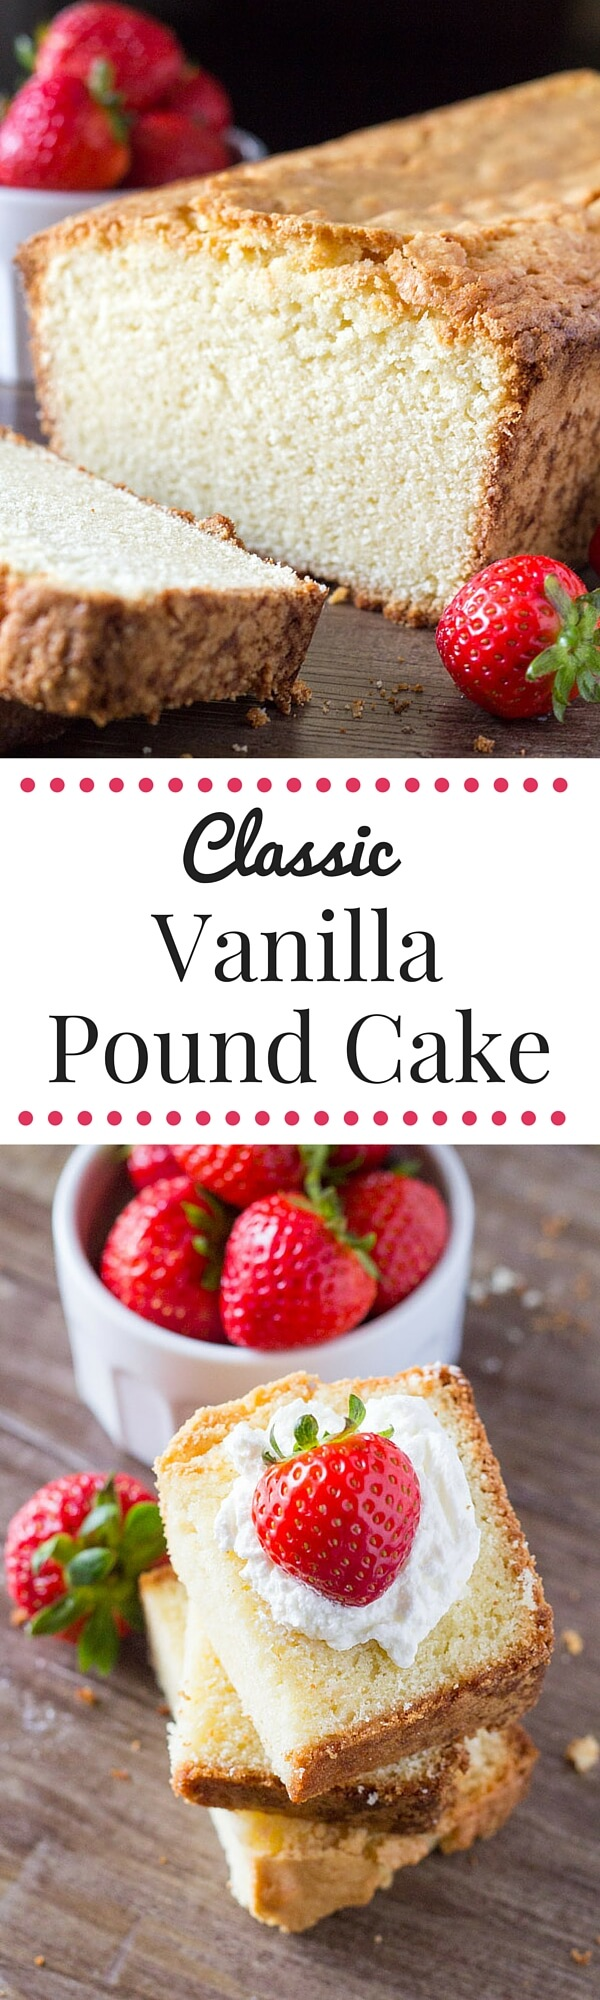 Seriously tender, deliciously buttery, perfectly moist Vanilla Pound Cake. Serve it with fresh fruit and whipped cream for dessert, or have a slice with your morning coffee. Learn the secrets to making this classic cake.